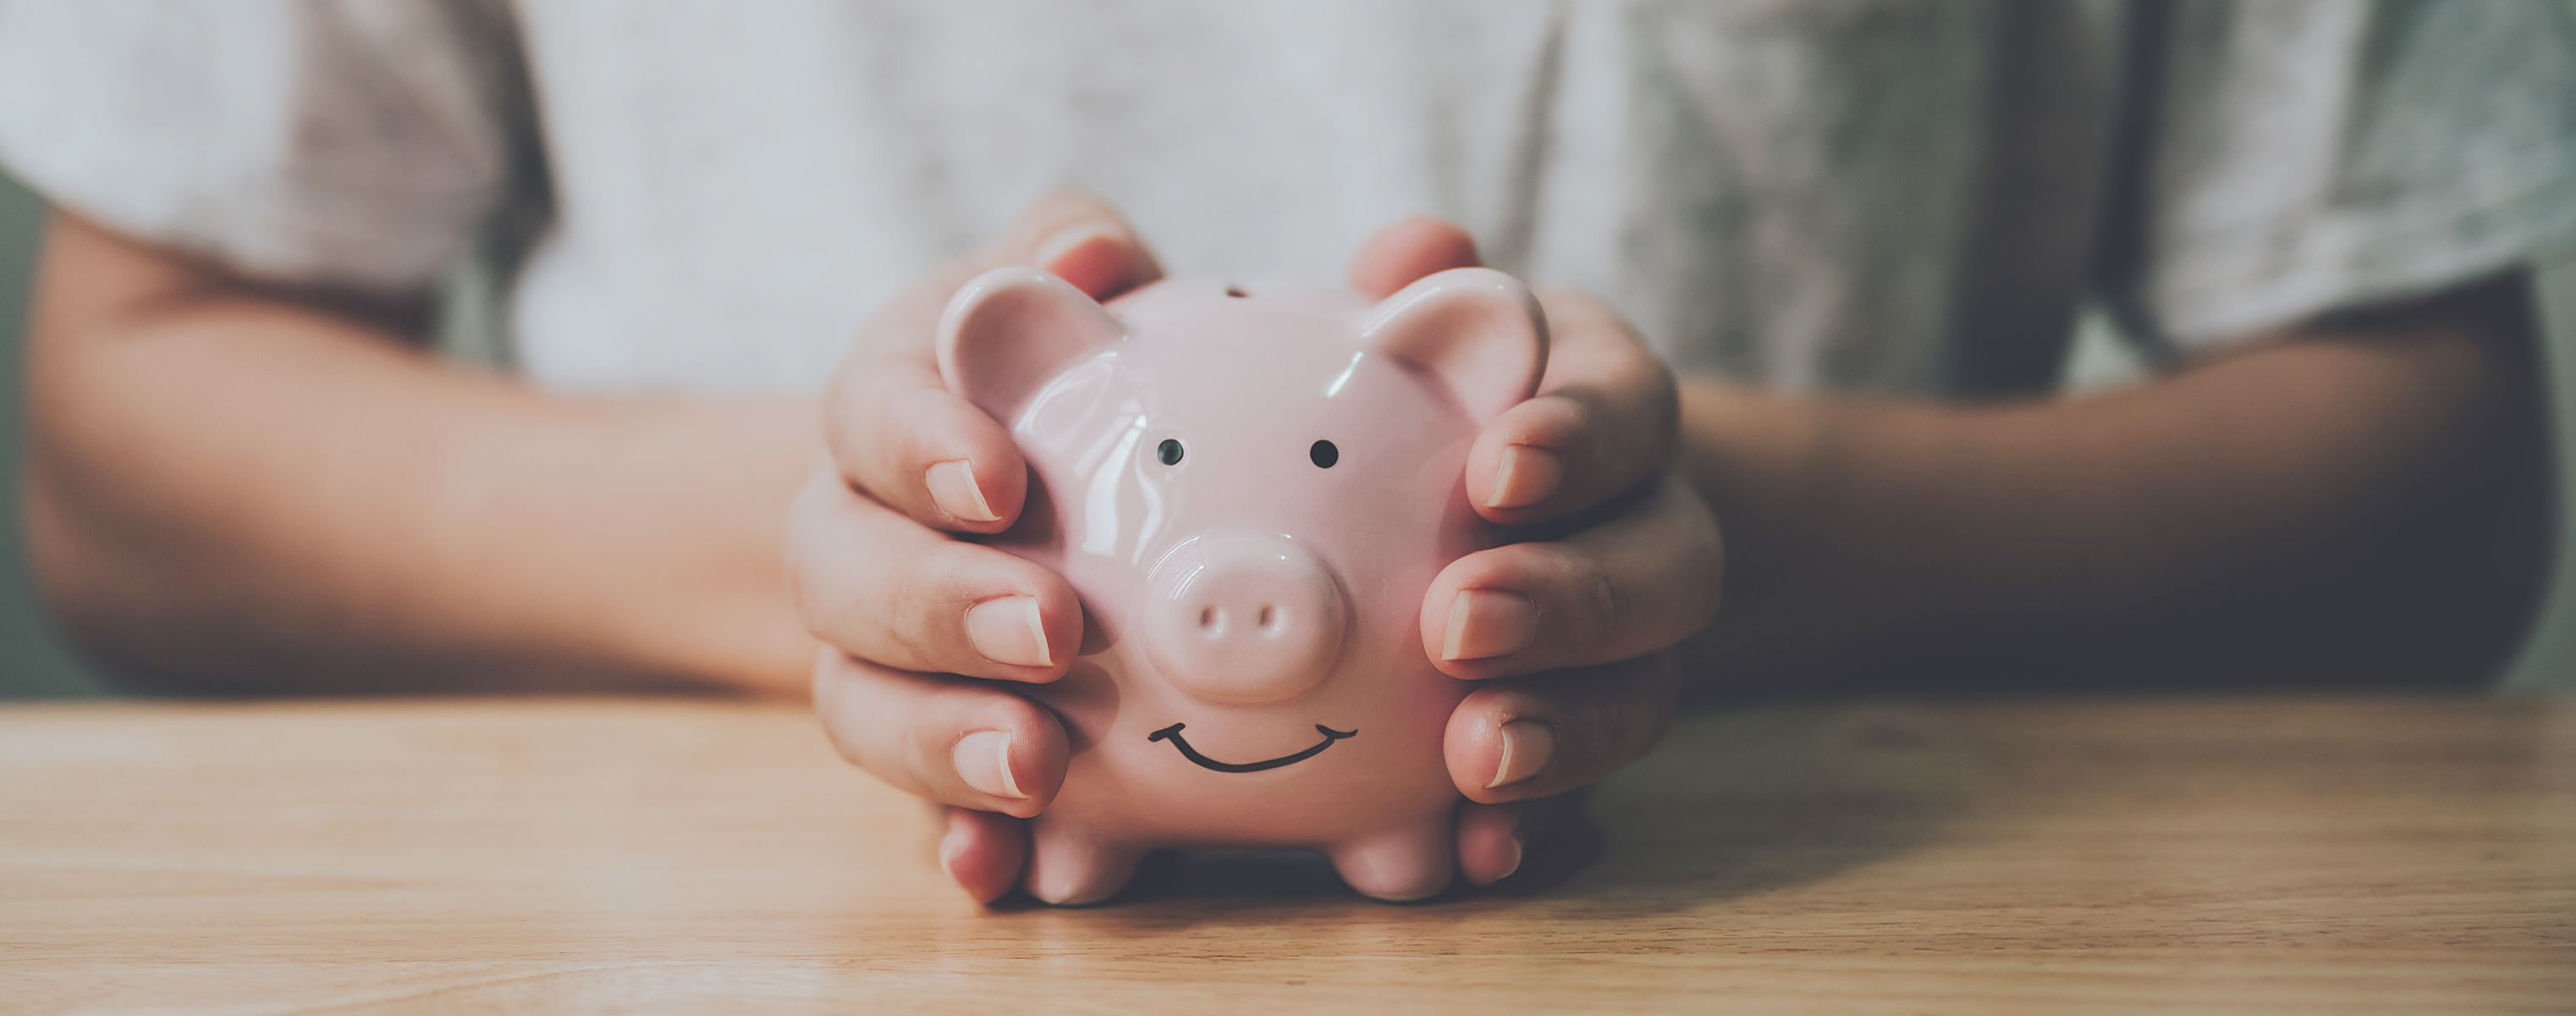 Womans hands holding a pink smiling piggy bank